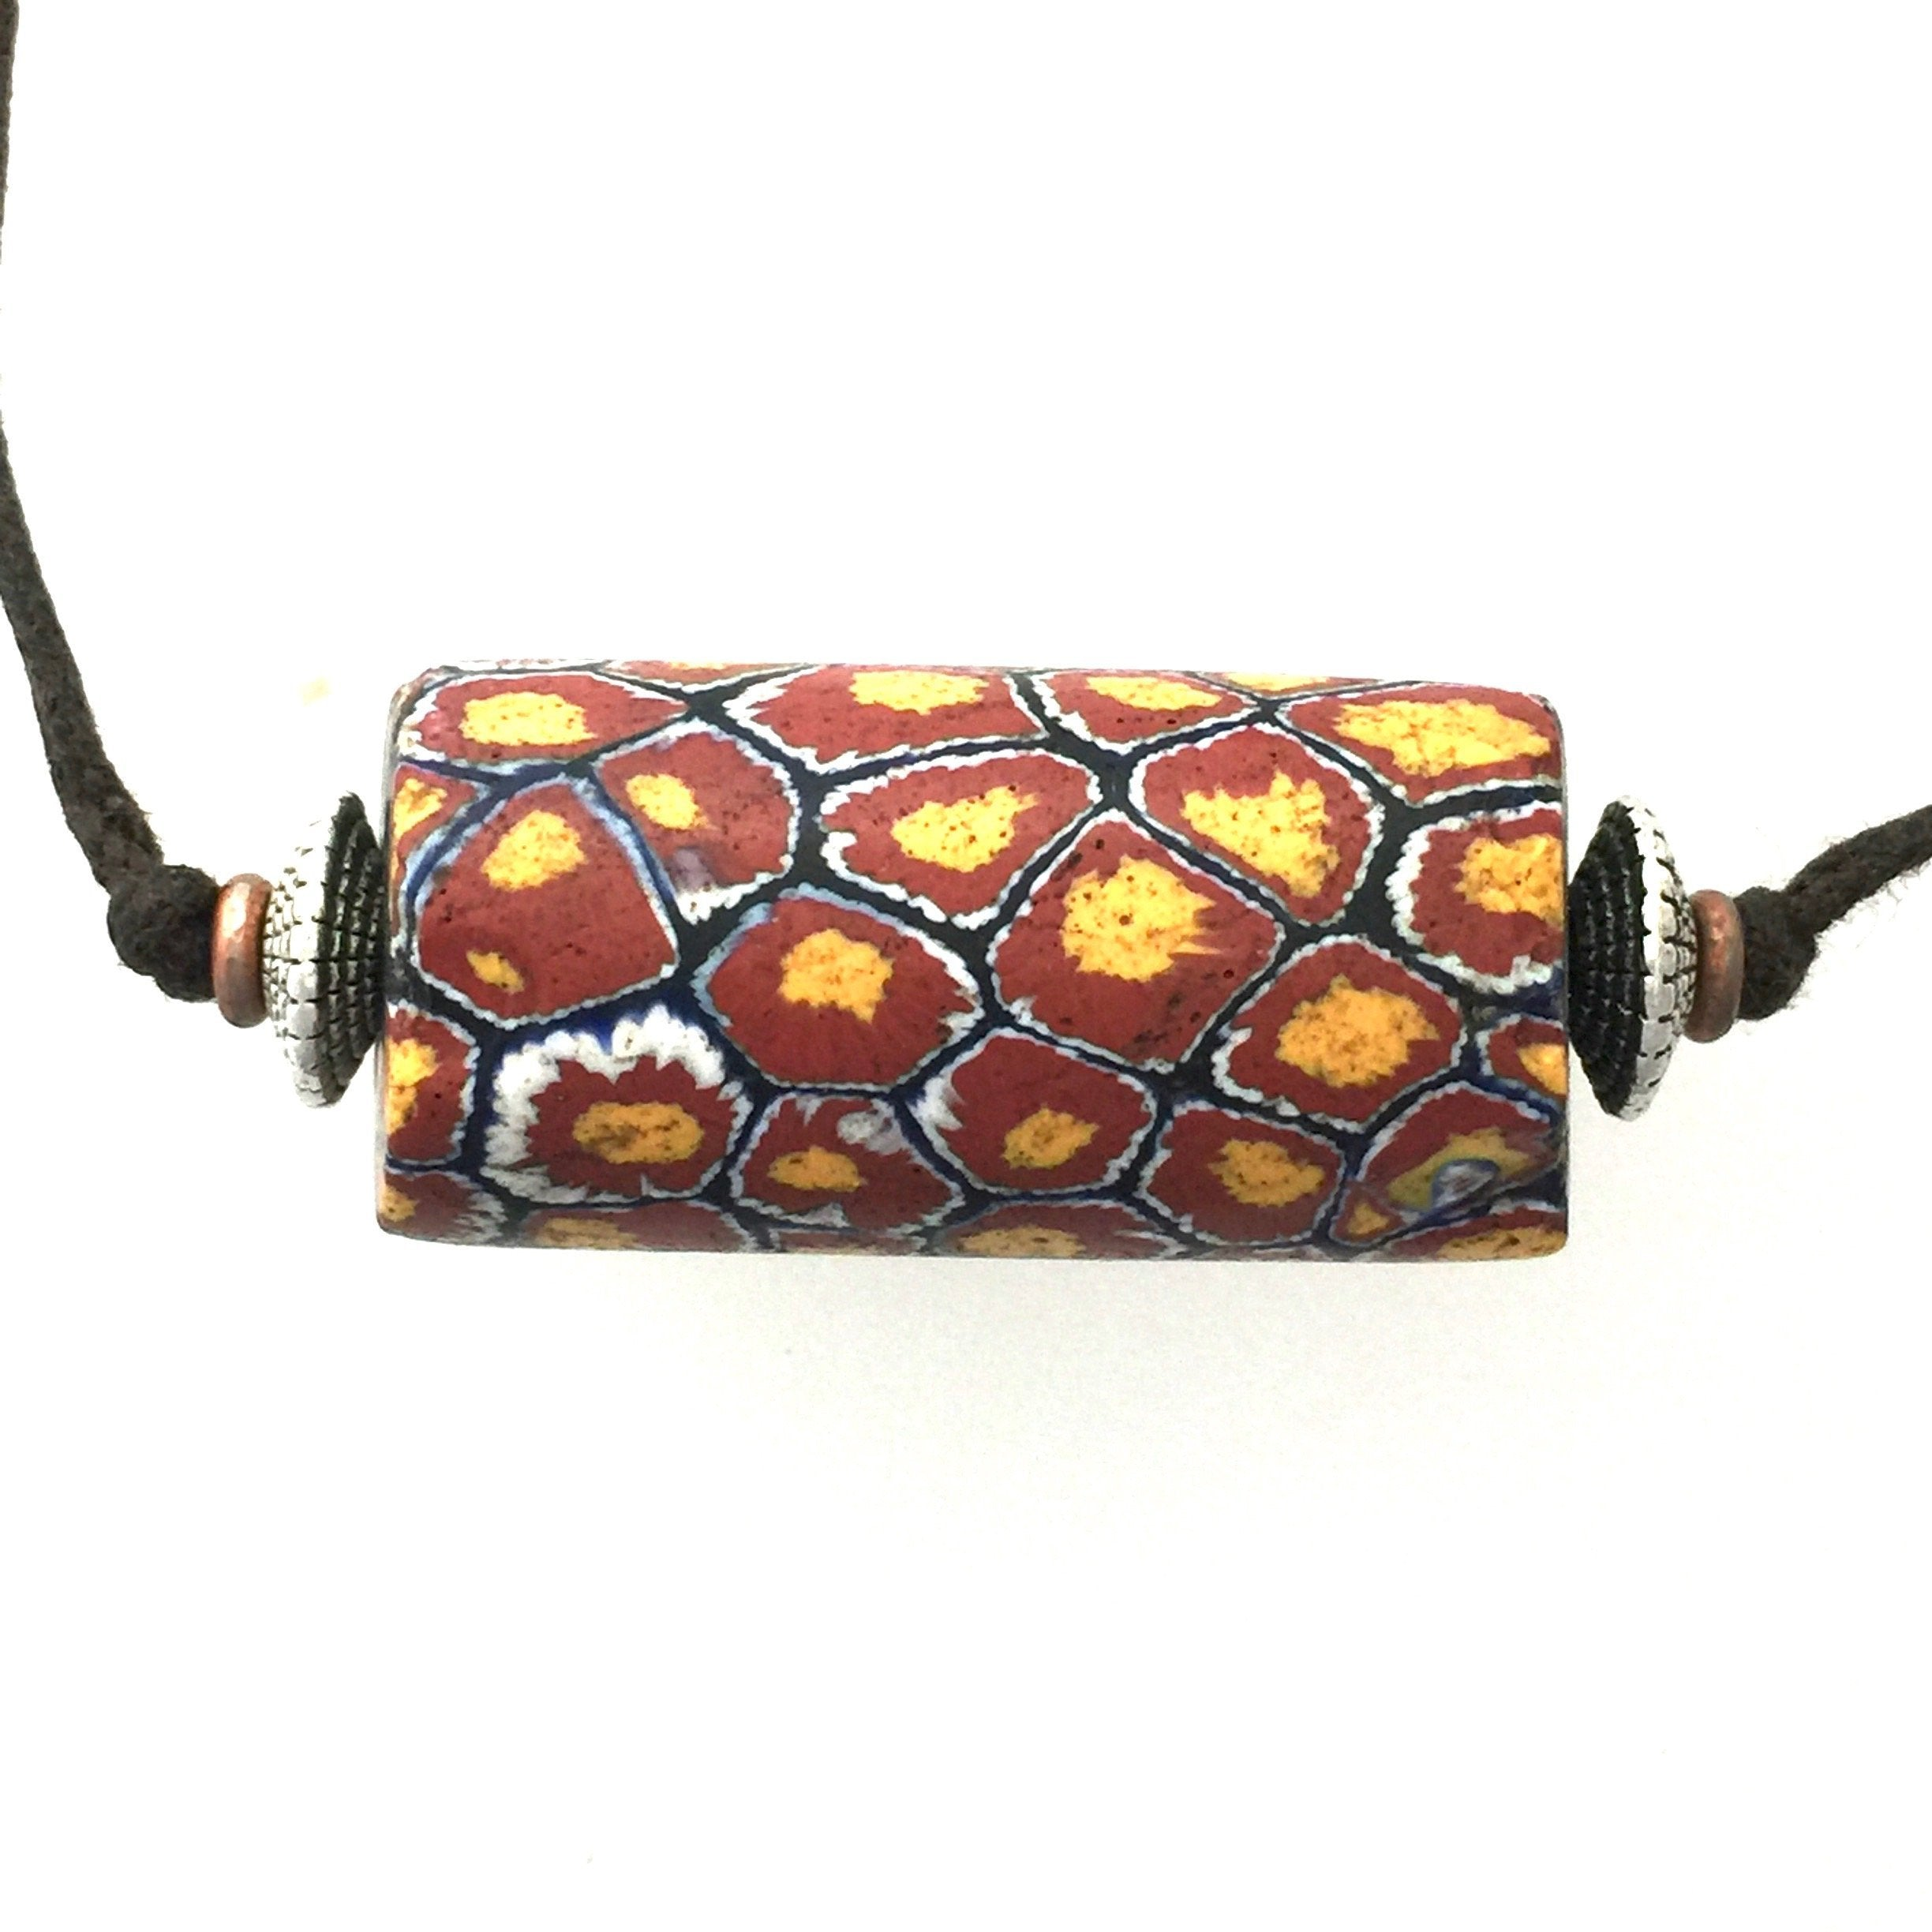 "African Trade Bead ""Giraffe"" design early 1900s"